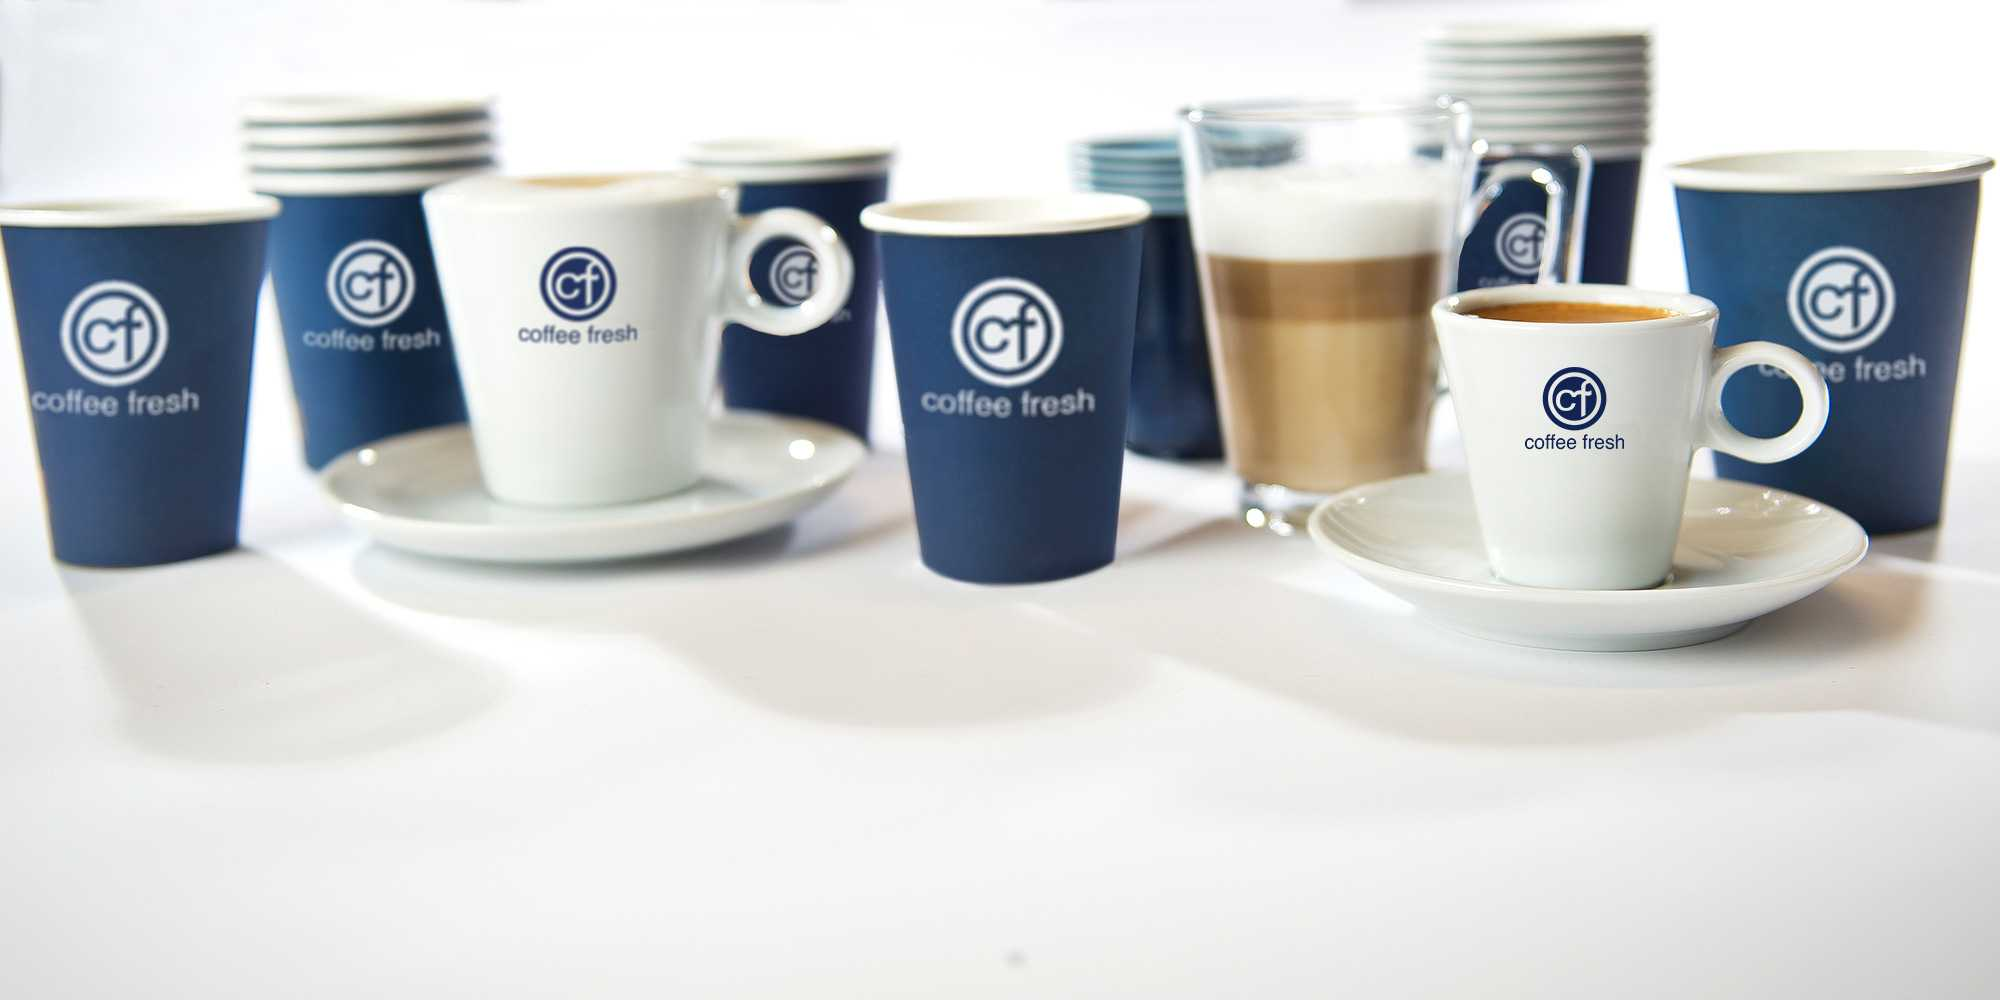 Koffiebekers en servies met logo van Coffee Fresh